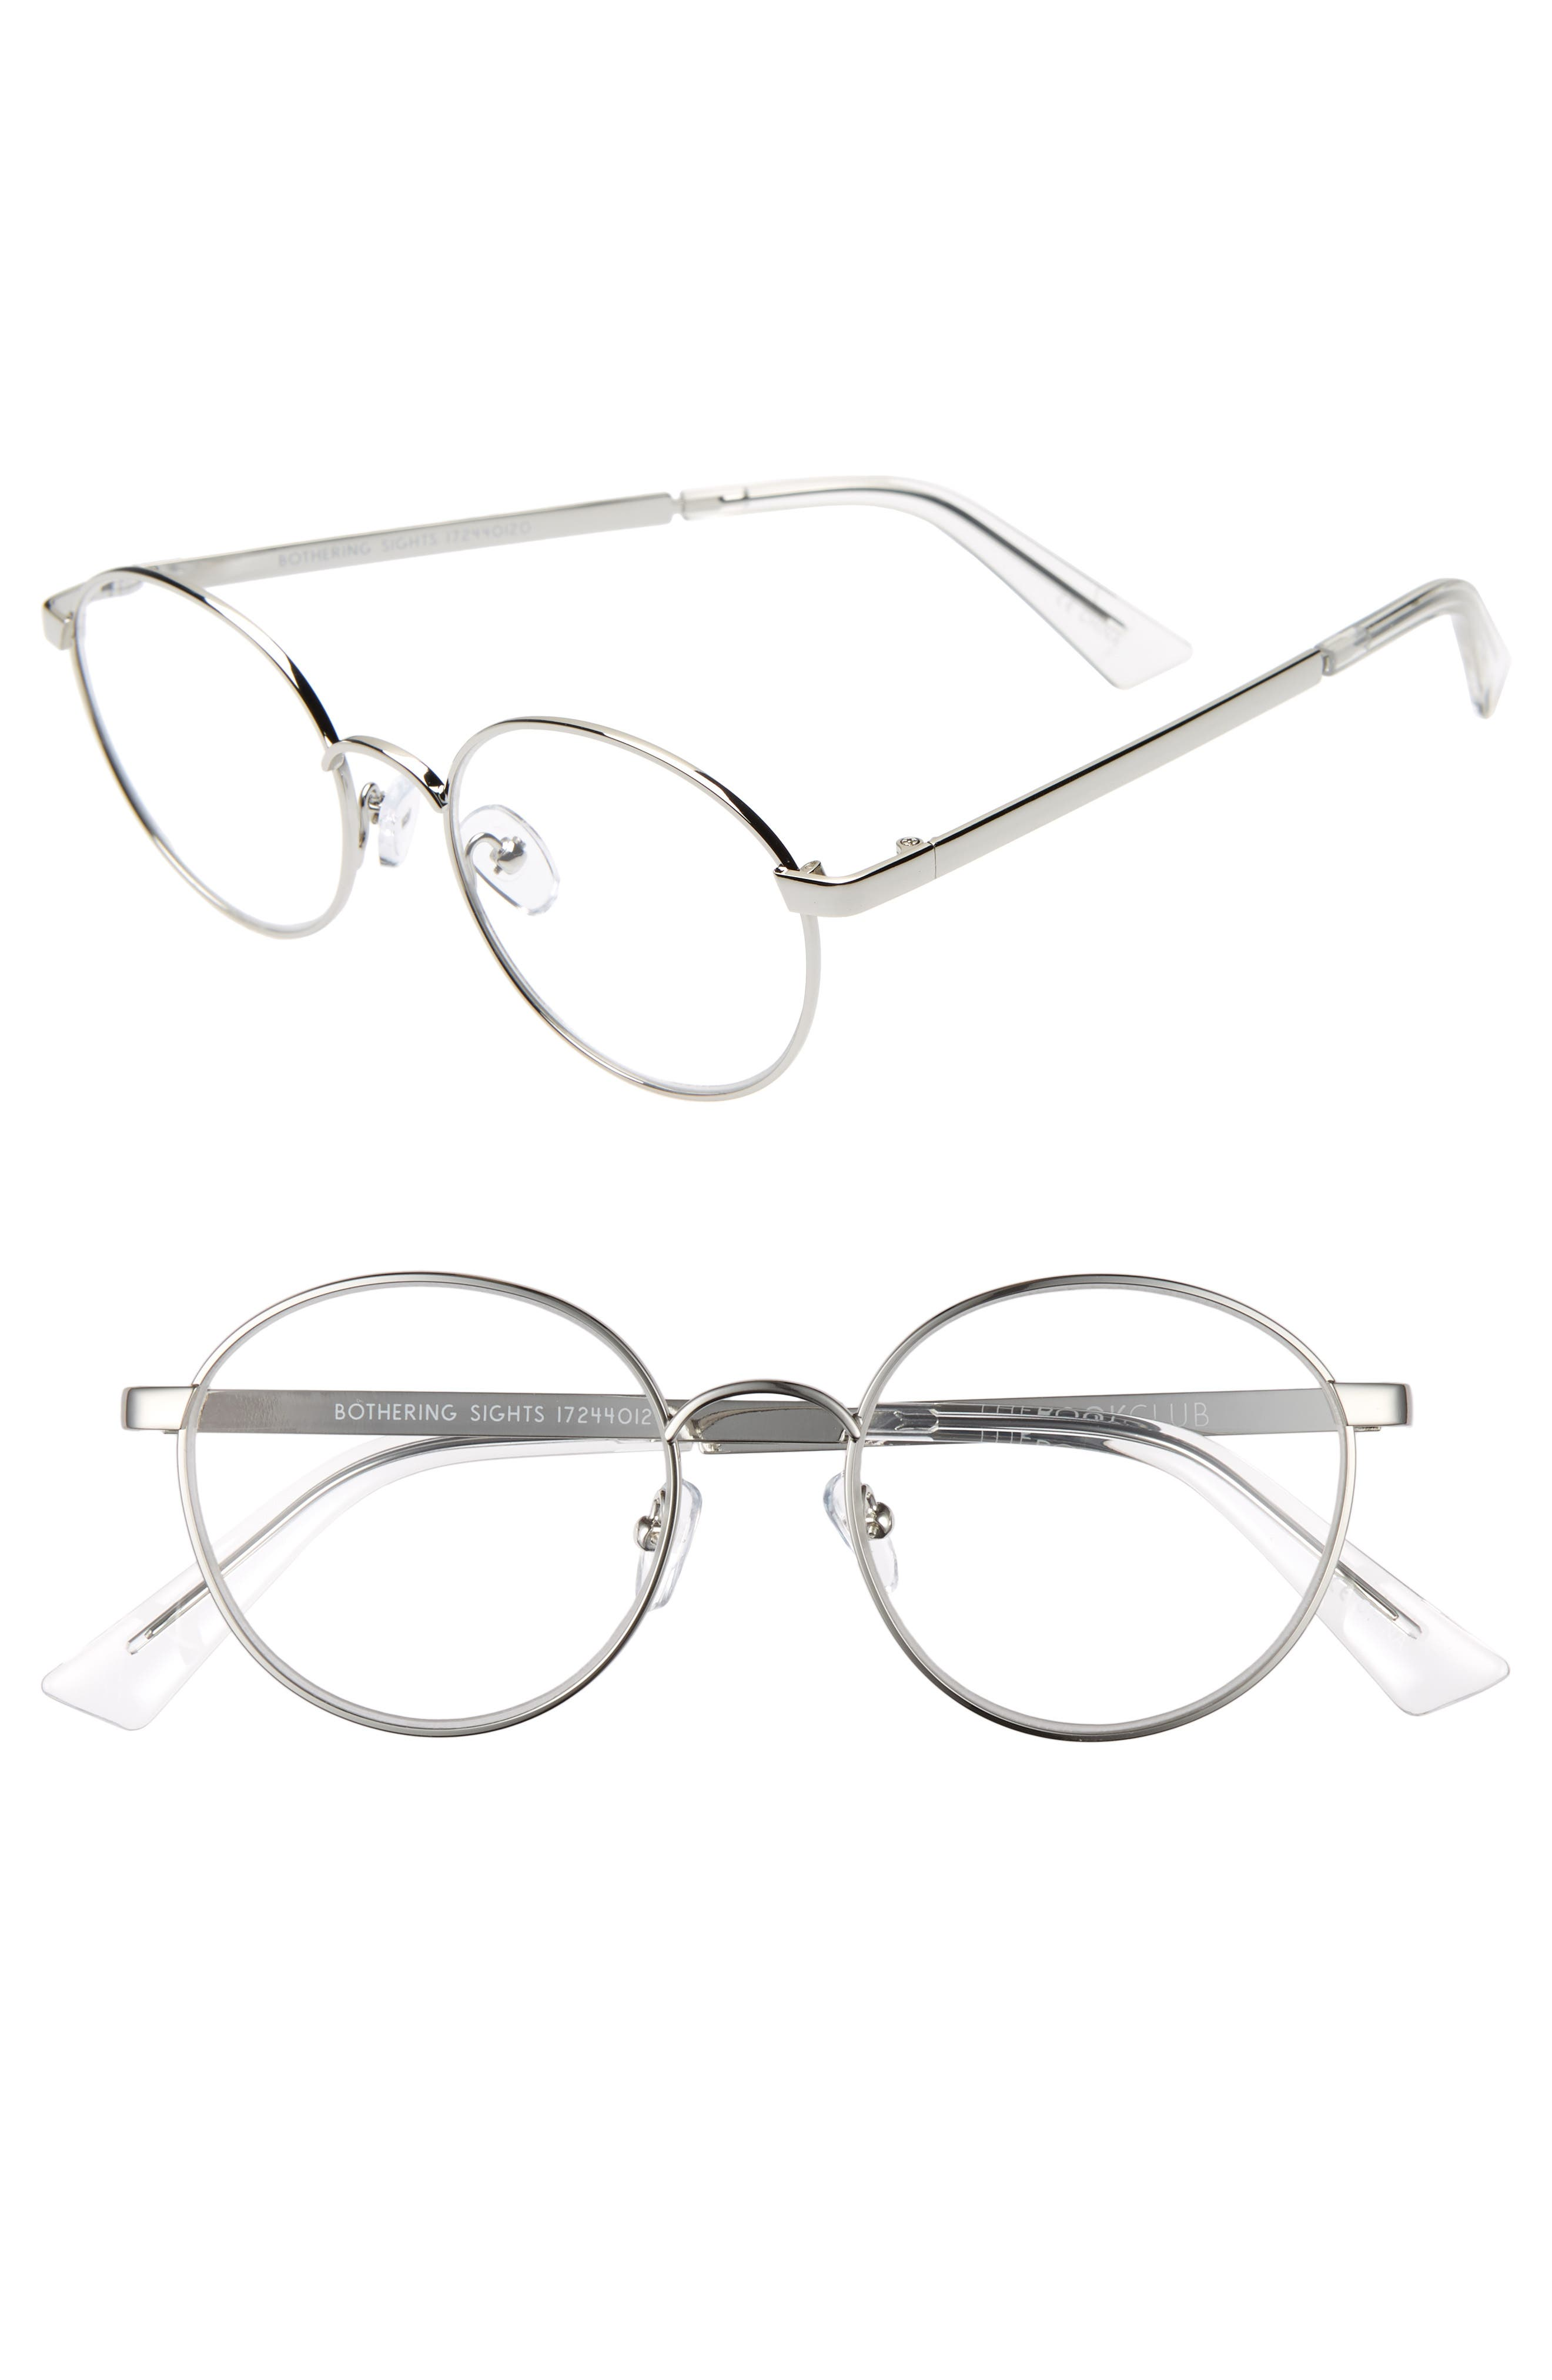 Bothering Sights 51mm Reading Glasses, Main, color, 040